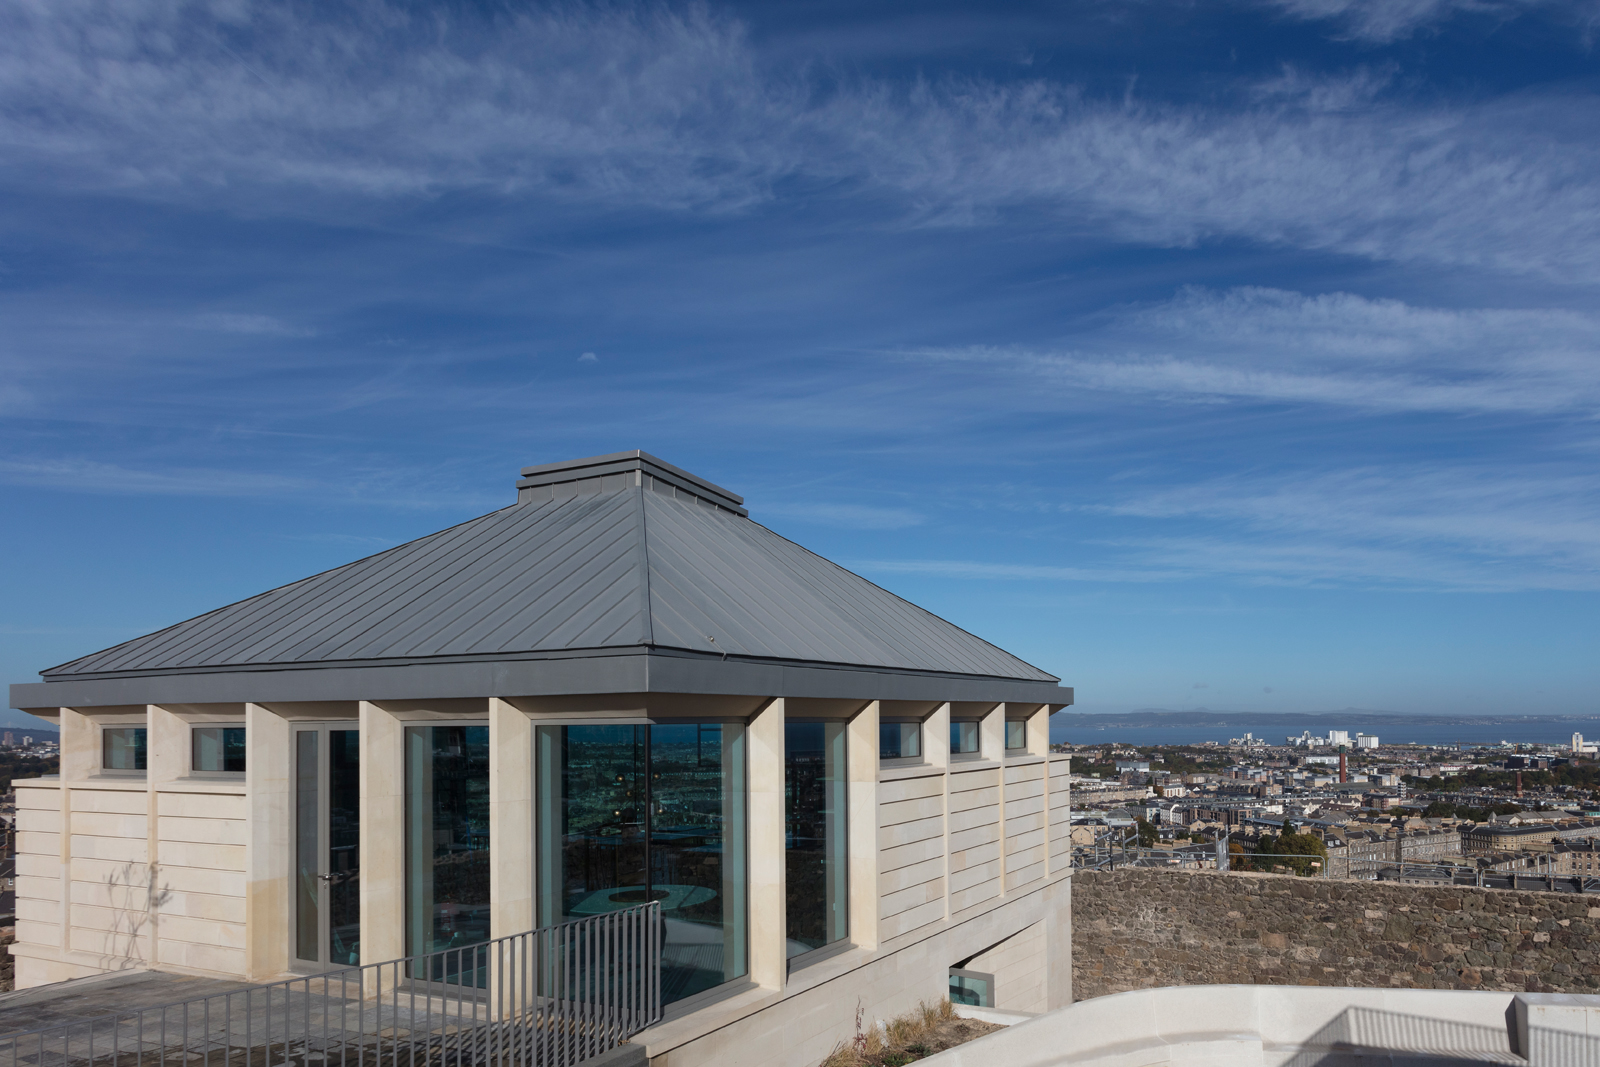 The entrance to The Lookout, which leads to floor-to-ceiling windows offering spectacular views.